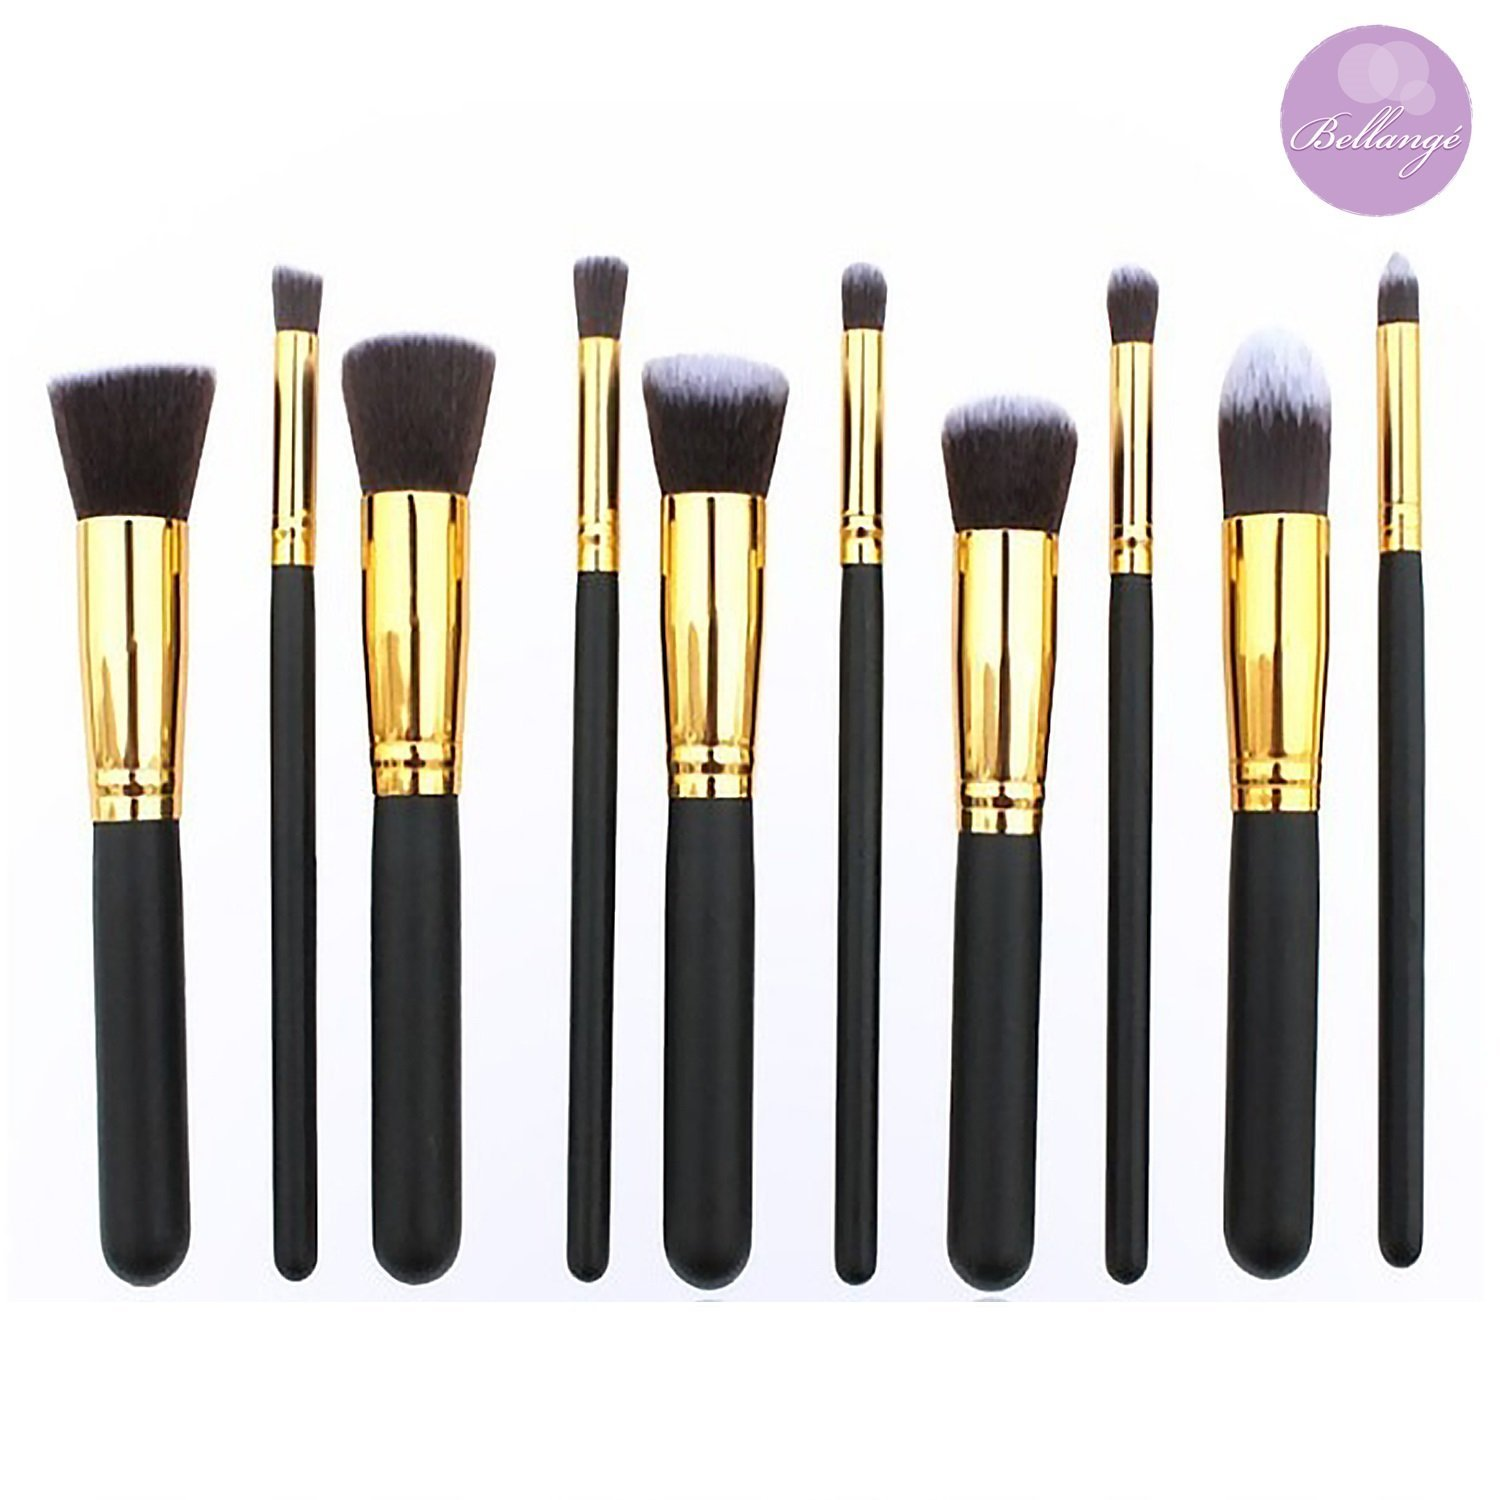 Bellangé Makeup Brush Set-10 Pieces-Kabuki Brushes-Best Makeup Brushes including Foundation Brush, Flat Top Brush, Face Brushes, Eye Brushes and Makeup Bag-Description of What to Use Each Brush For on Handles-Feel Flawless, Look Stunning, Be Beautiful-Love Your Look 30 Day Guarantee